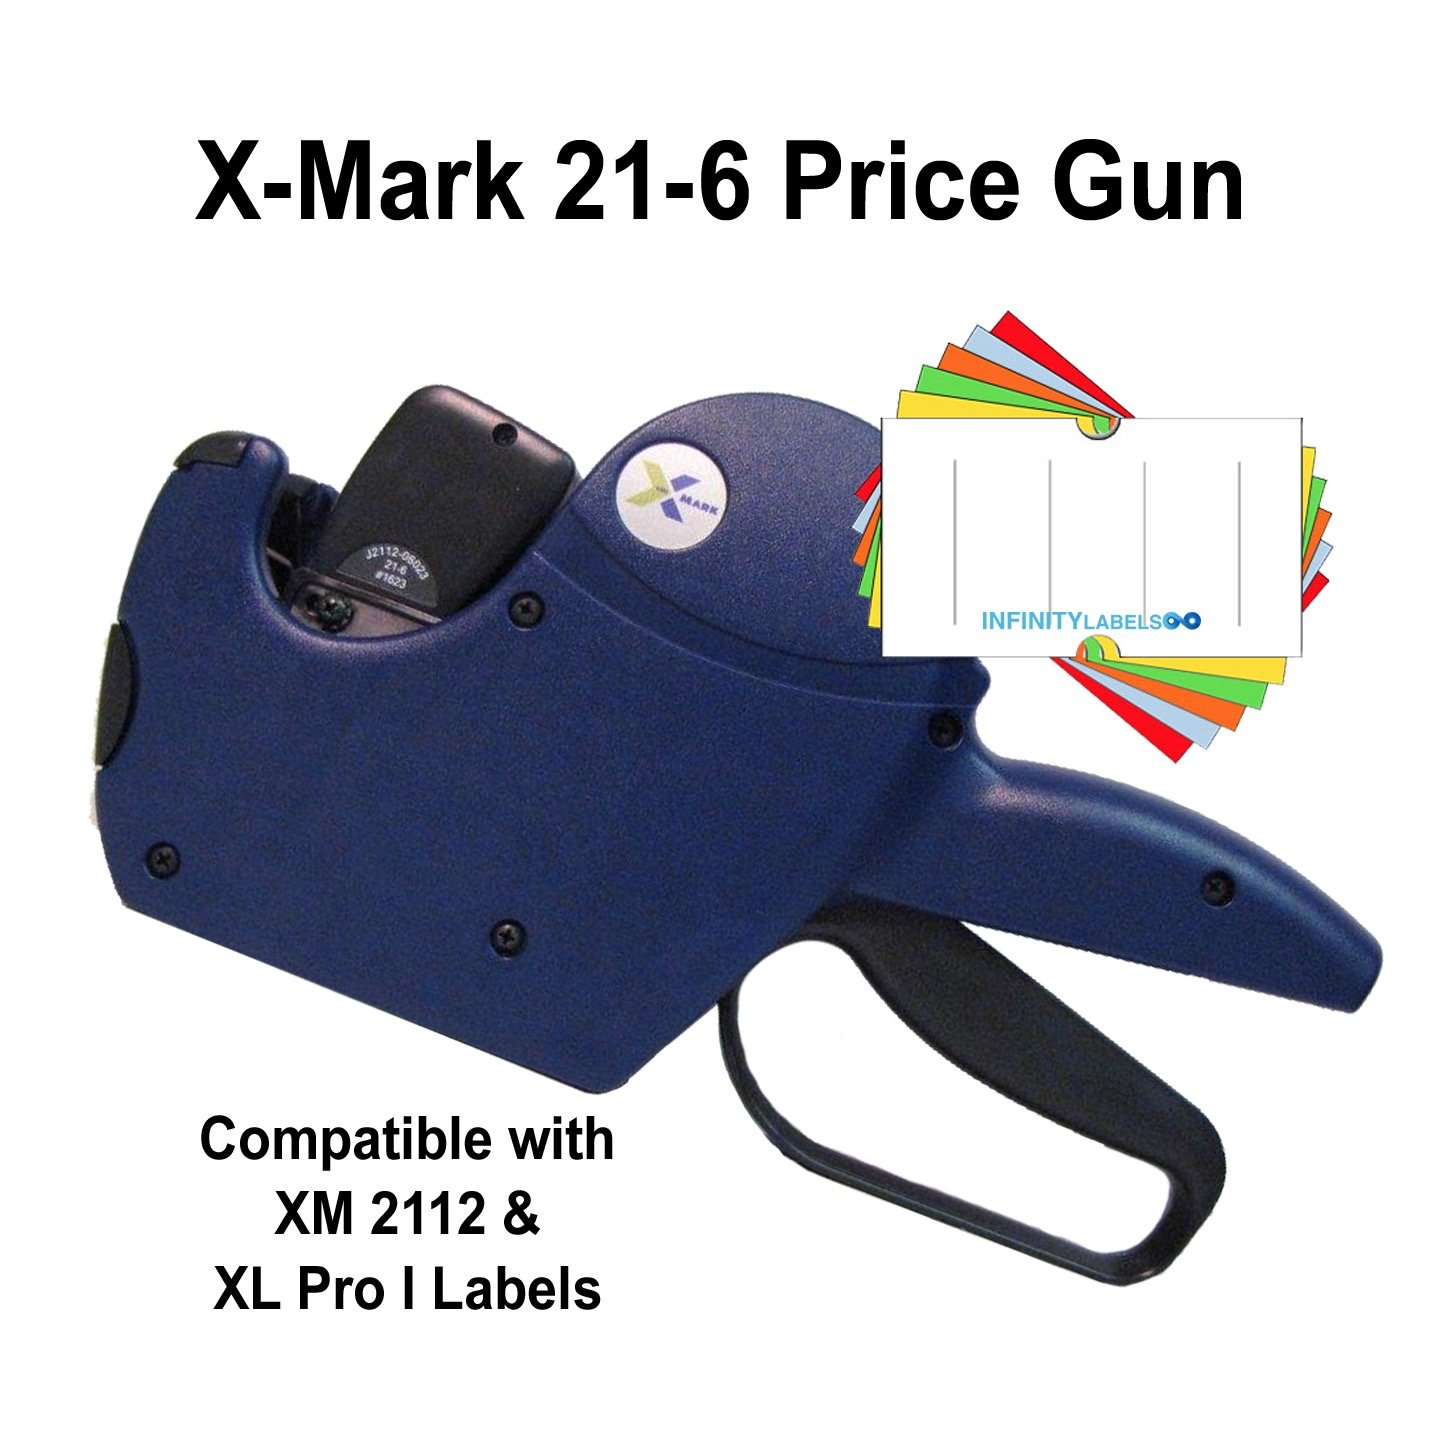 X-Mark Price Guns (10): TXM 21-6 Bulk PRICING [1 Line / 6 Characters] by Infinity Labels